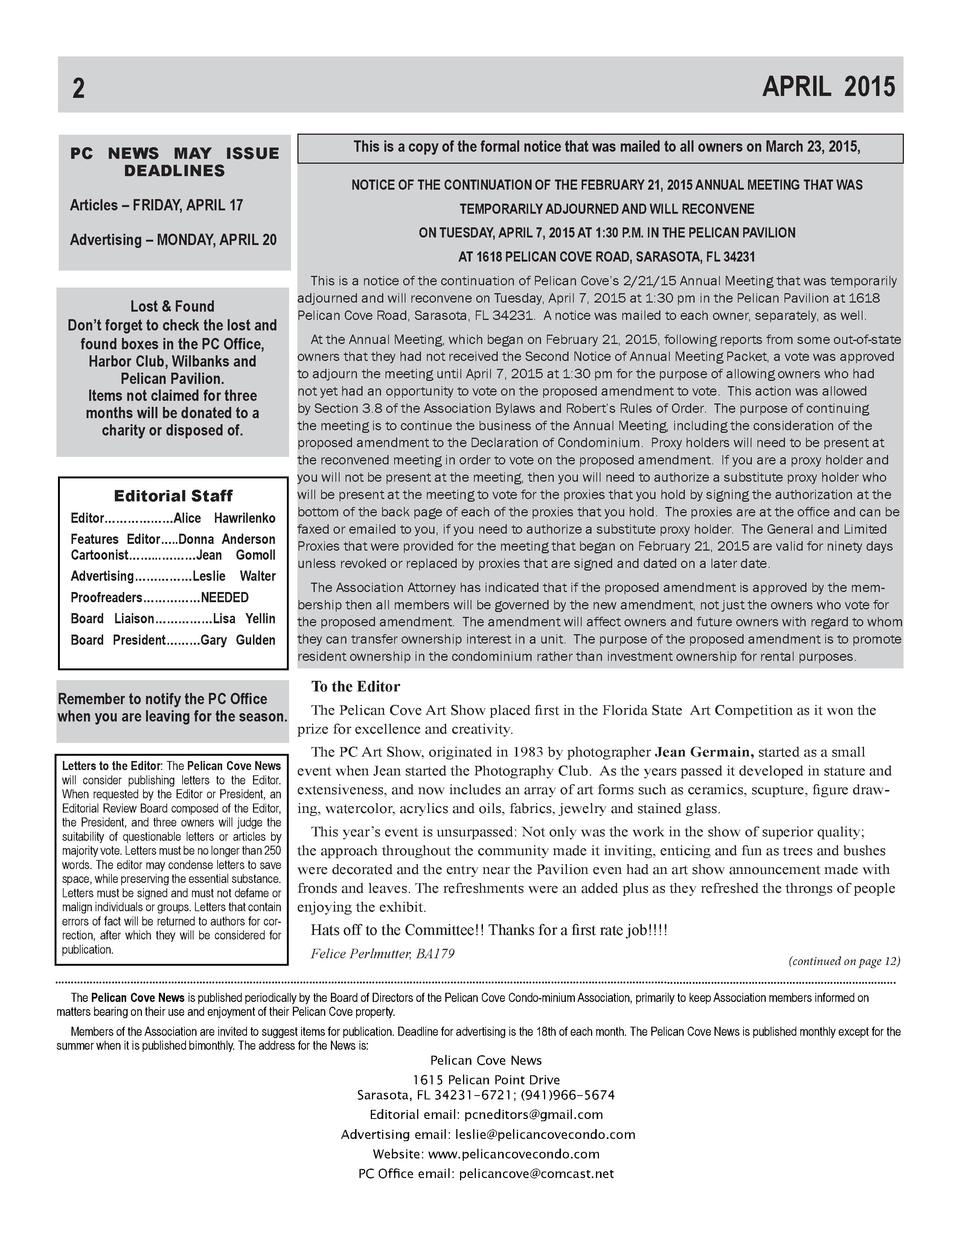 APRIL 2015  2 PC NEWS MAY ISSUE DEADLINES Articles     FRIDAY, APRIL 17  This is a copy of the formal notice that was mail...